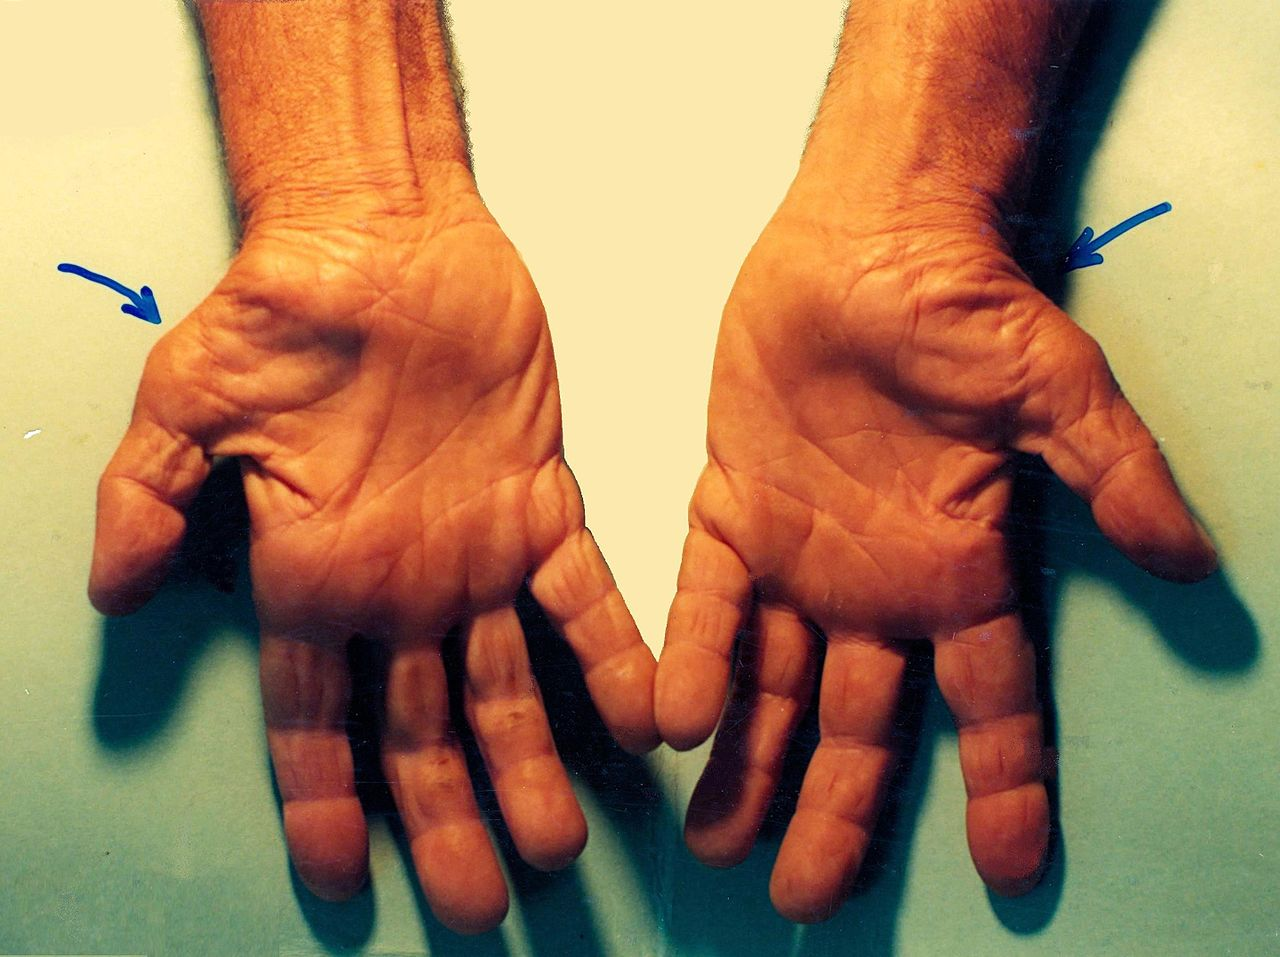 sindrom terowong karpal (carpal tunnel syndrome)